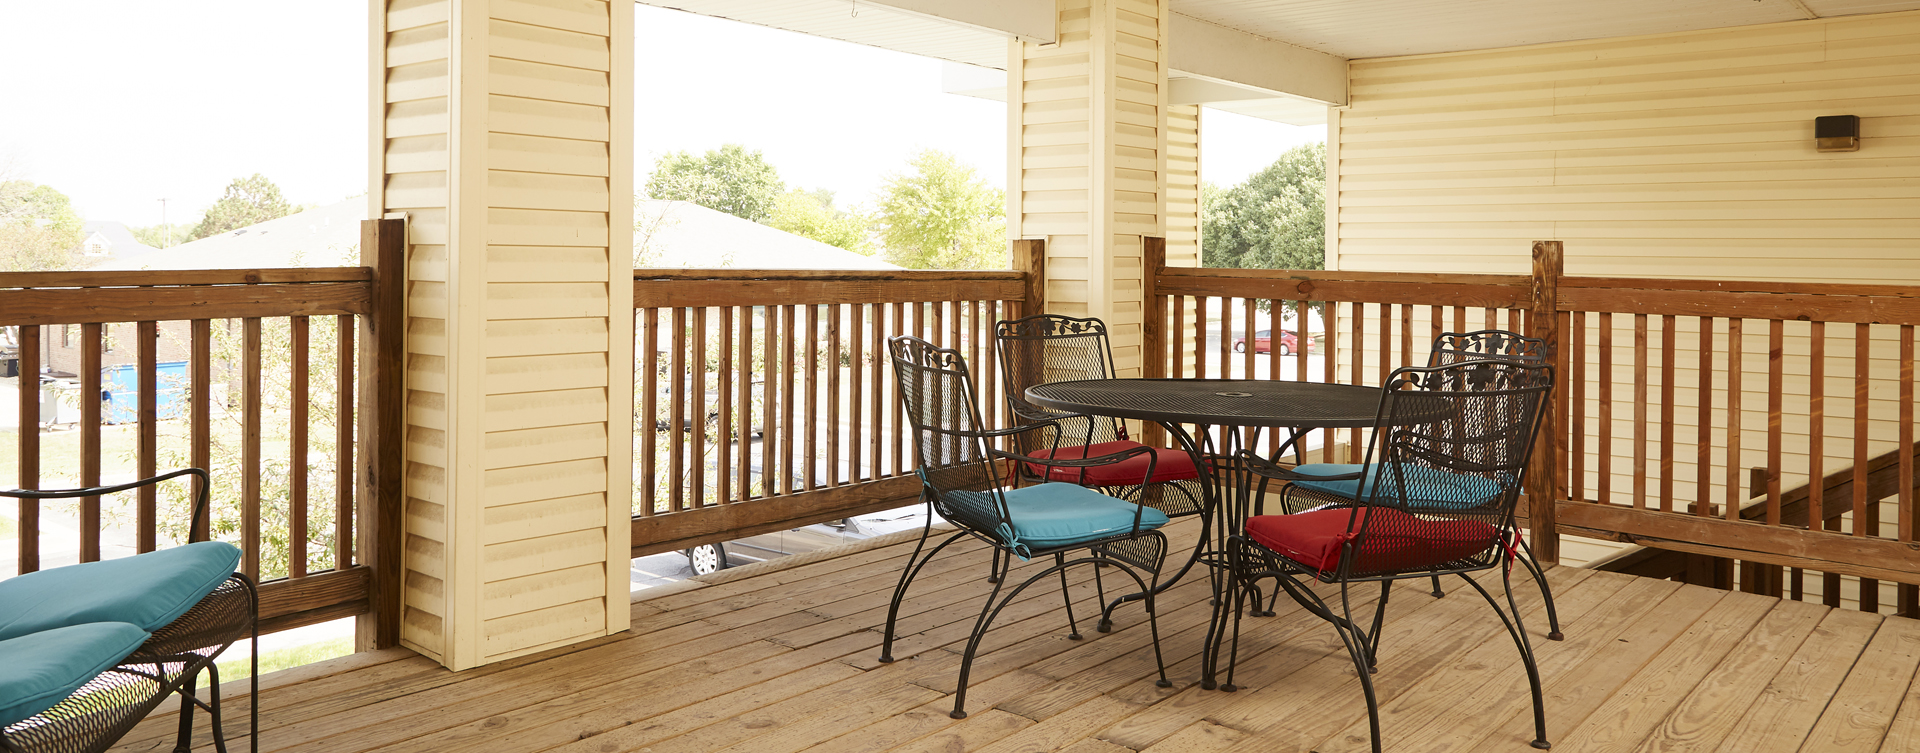 Enjoy the outdoors in a whole new light by stepping onto our back deck at Bickford of Springfield